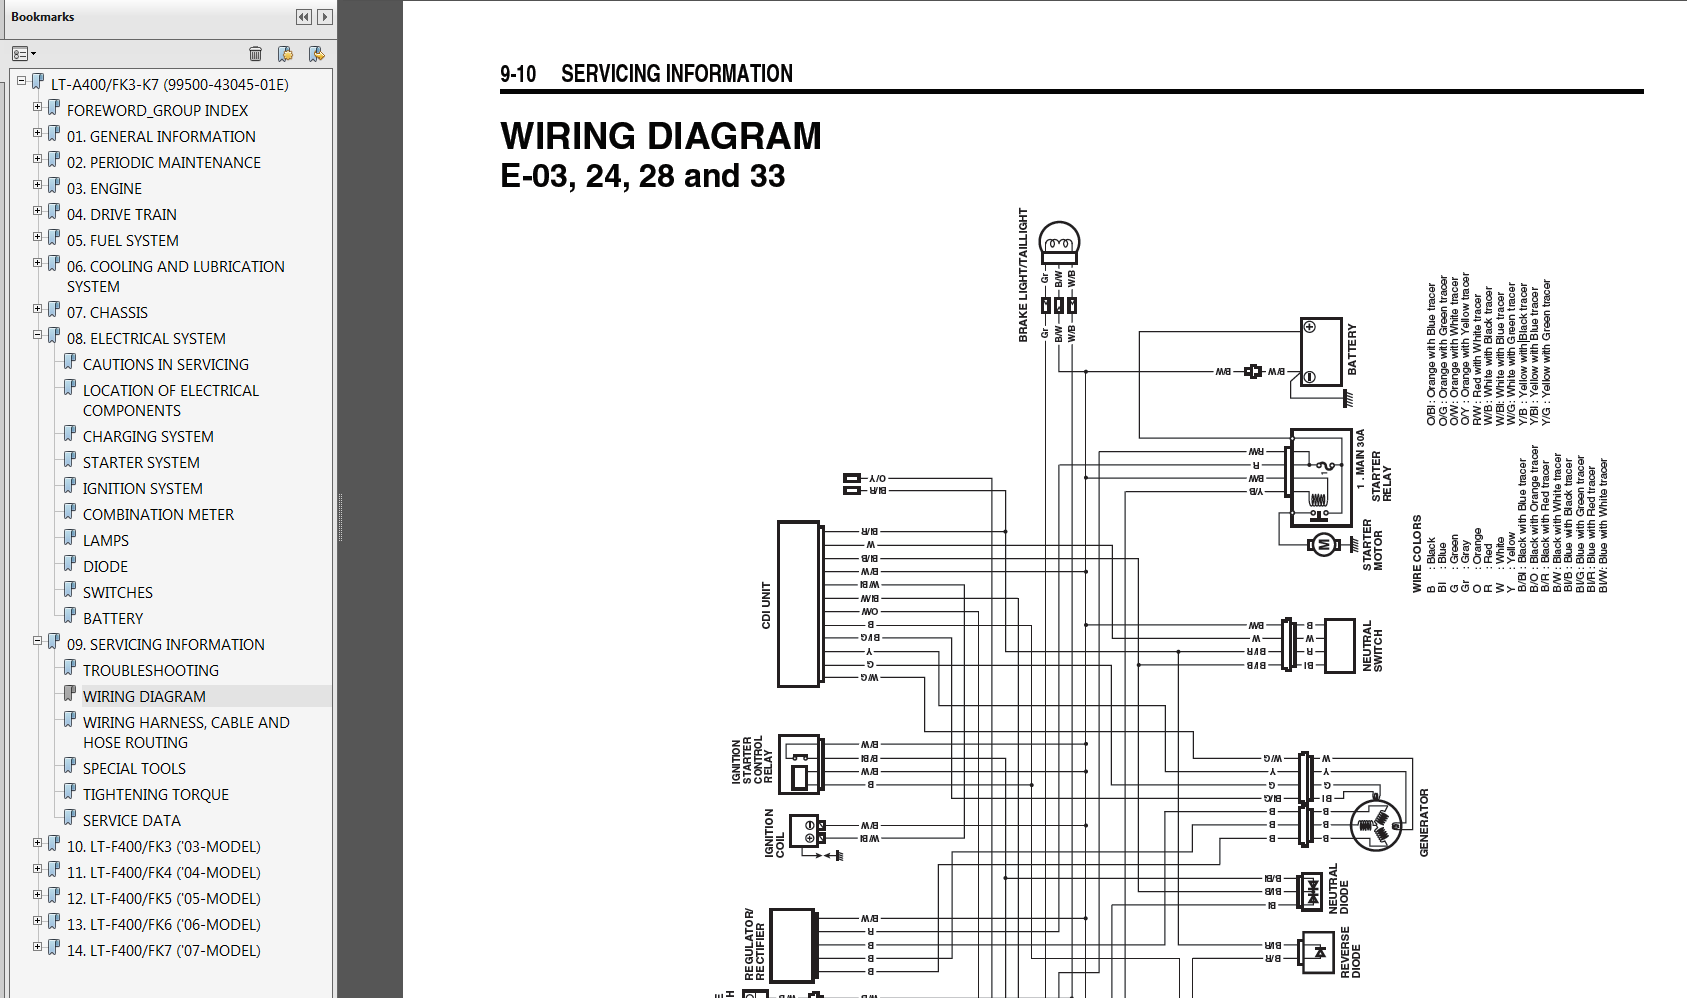 2003 honda rincon 650 wiring diagram 2002-2007 suzuki lt-a400, lt-a400f service repair manual ... 2003 honda accord stereo wiring diagram